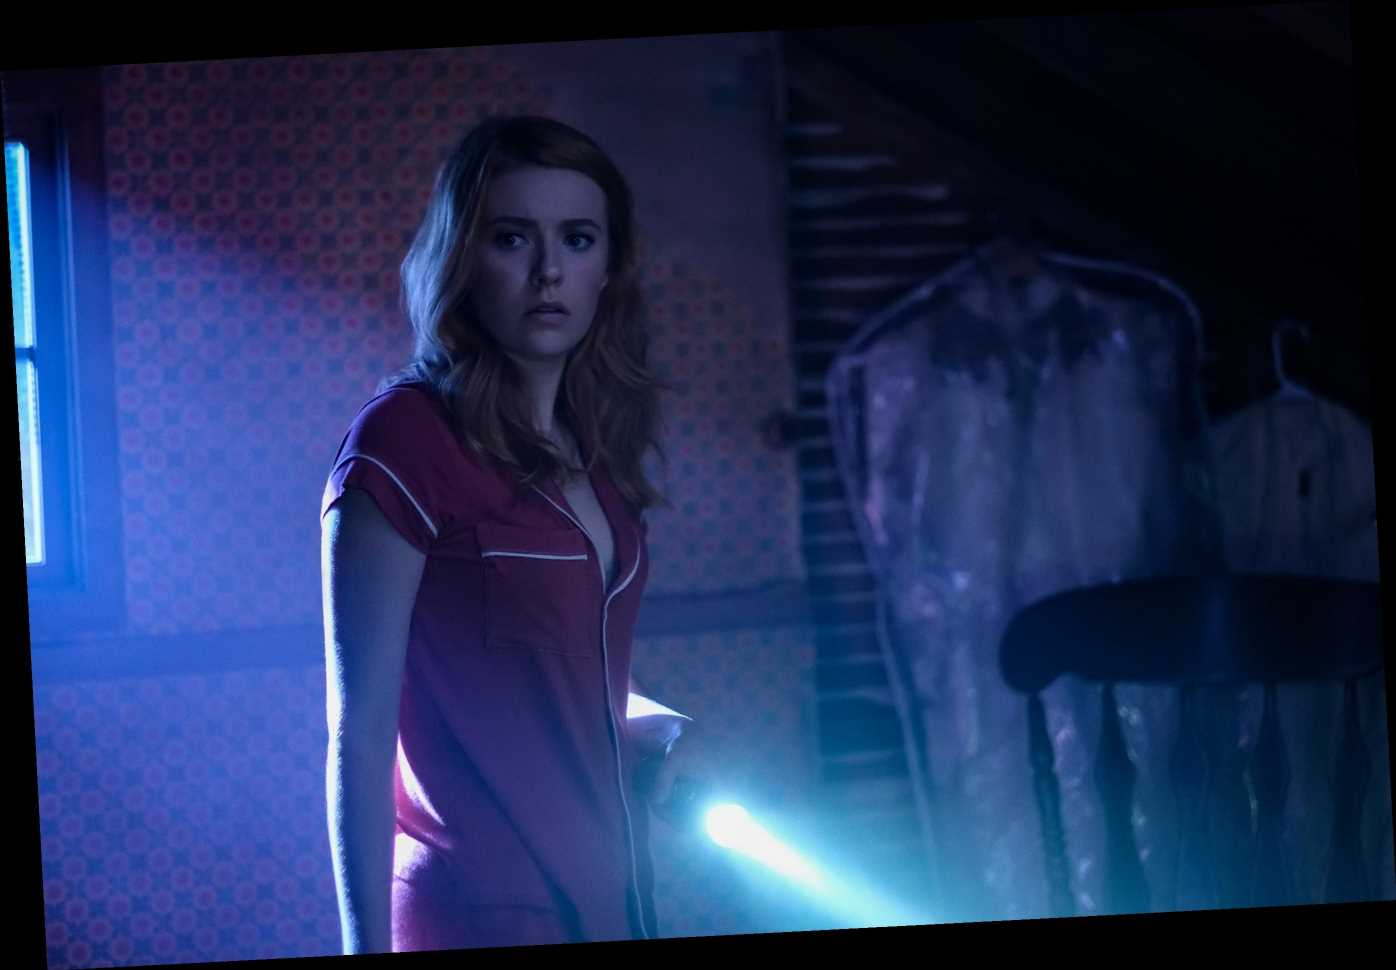 Nancy Drew Review: Spooky Series Caters to Fans of Riverdale and Chilling Adventures of Sabrina